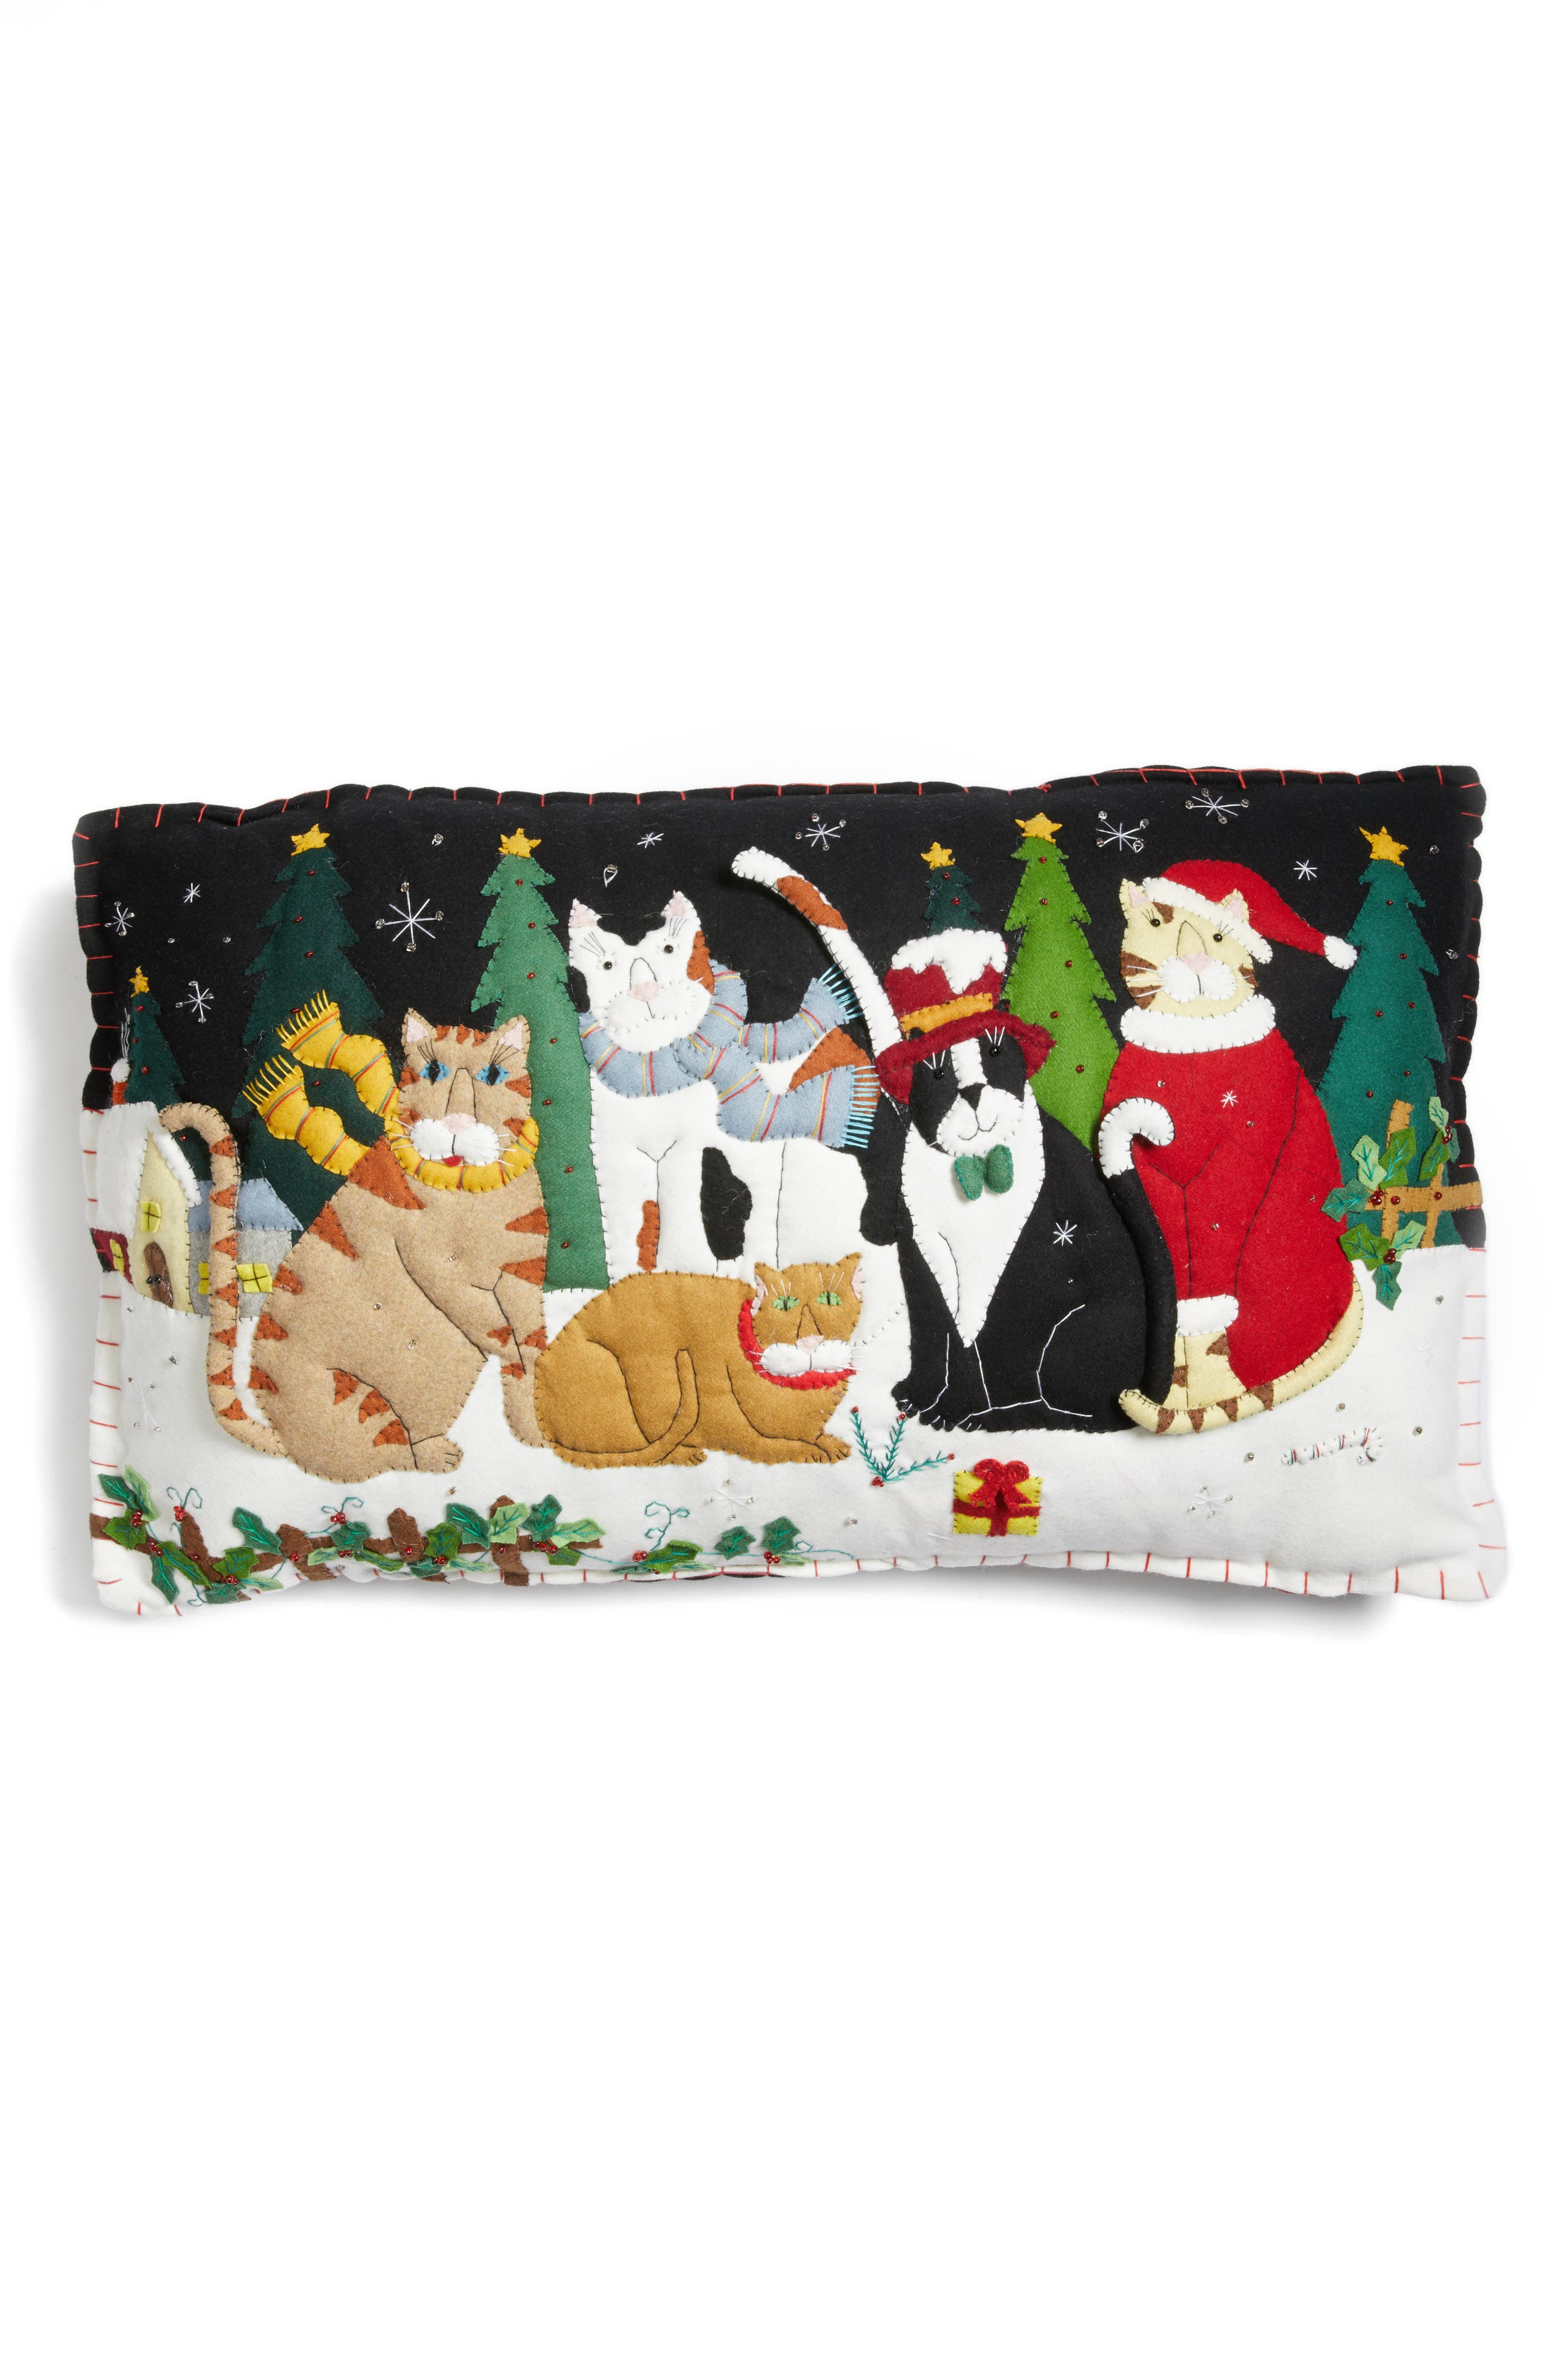 New World Arts Two Snowman Pillow